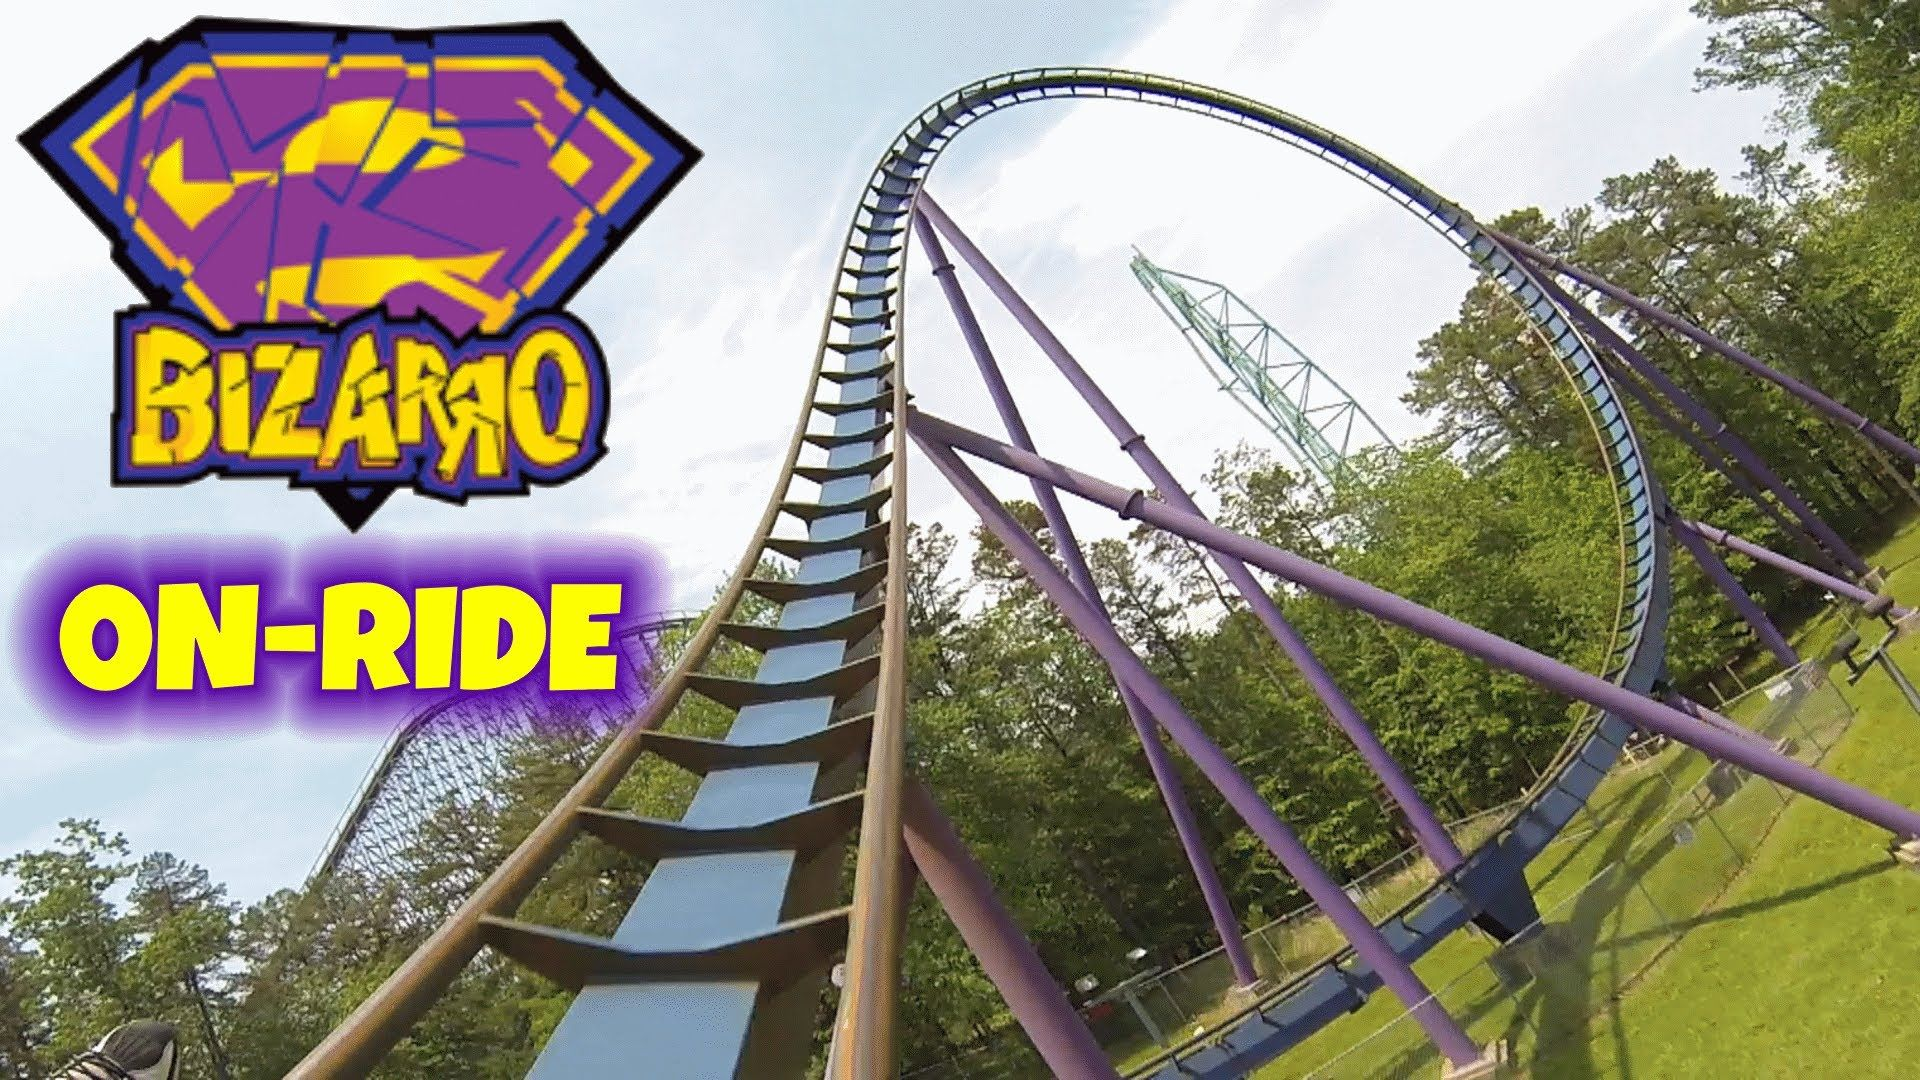 Bizarro On Ride Front Seat Hd Pov Six Flags Great Adventure Six Flags Great Adventure Thrill Ride Greatest Adventure